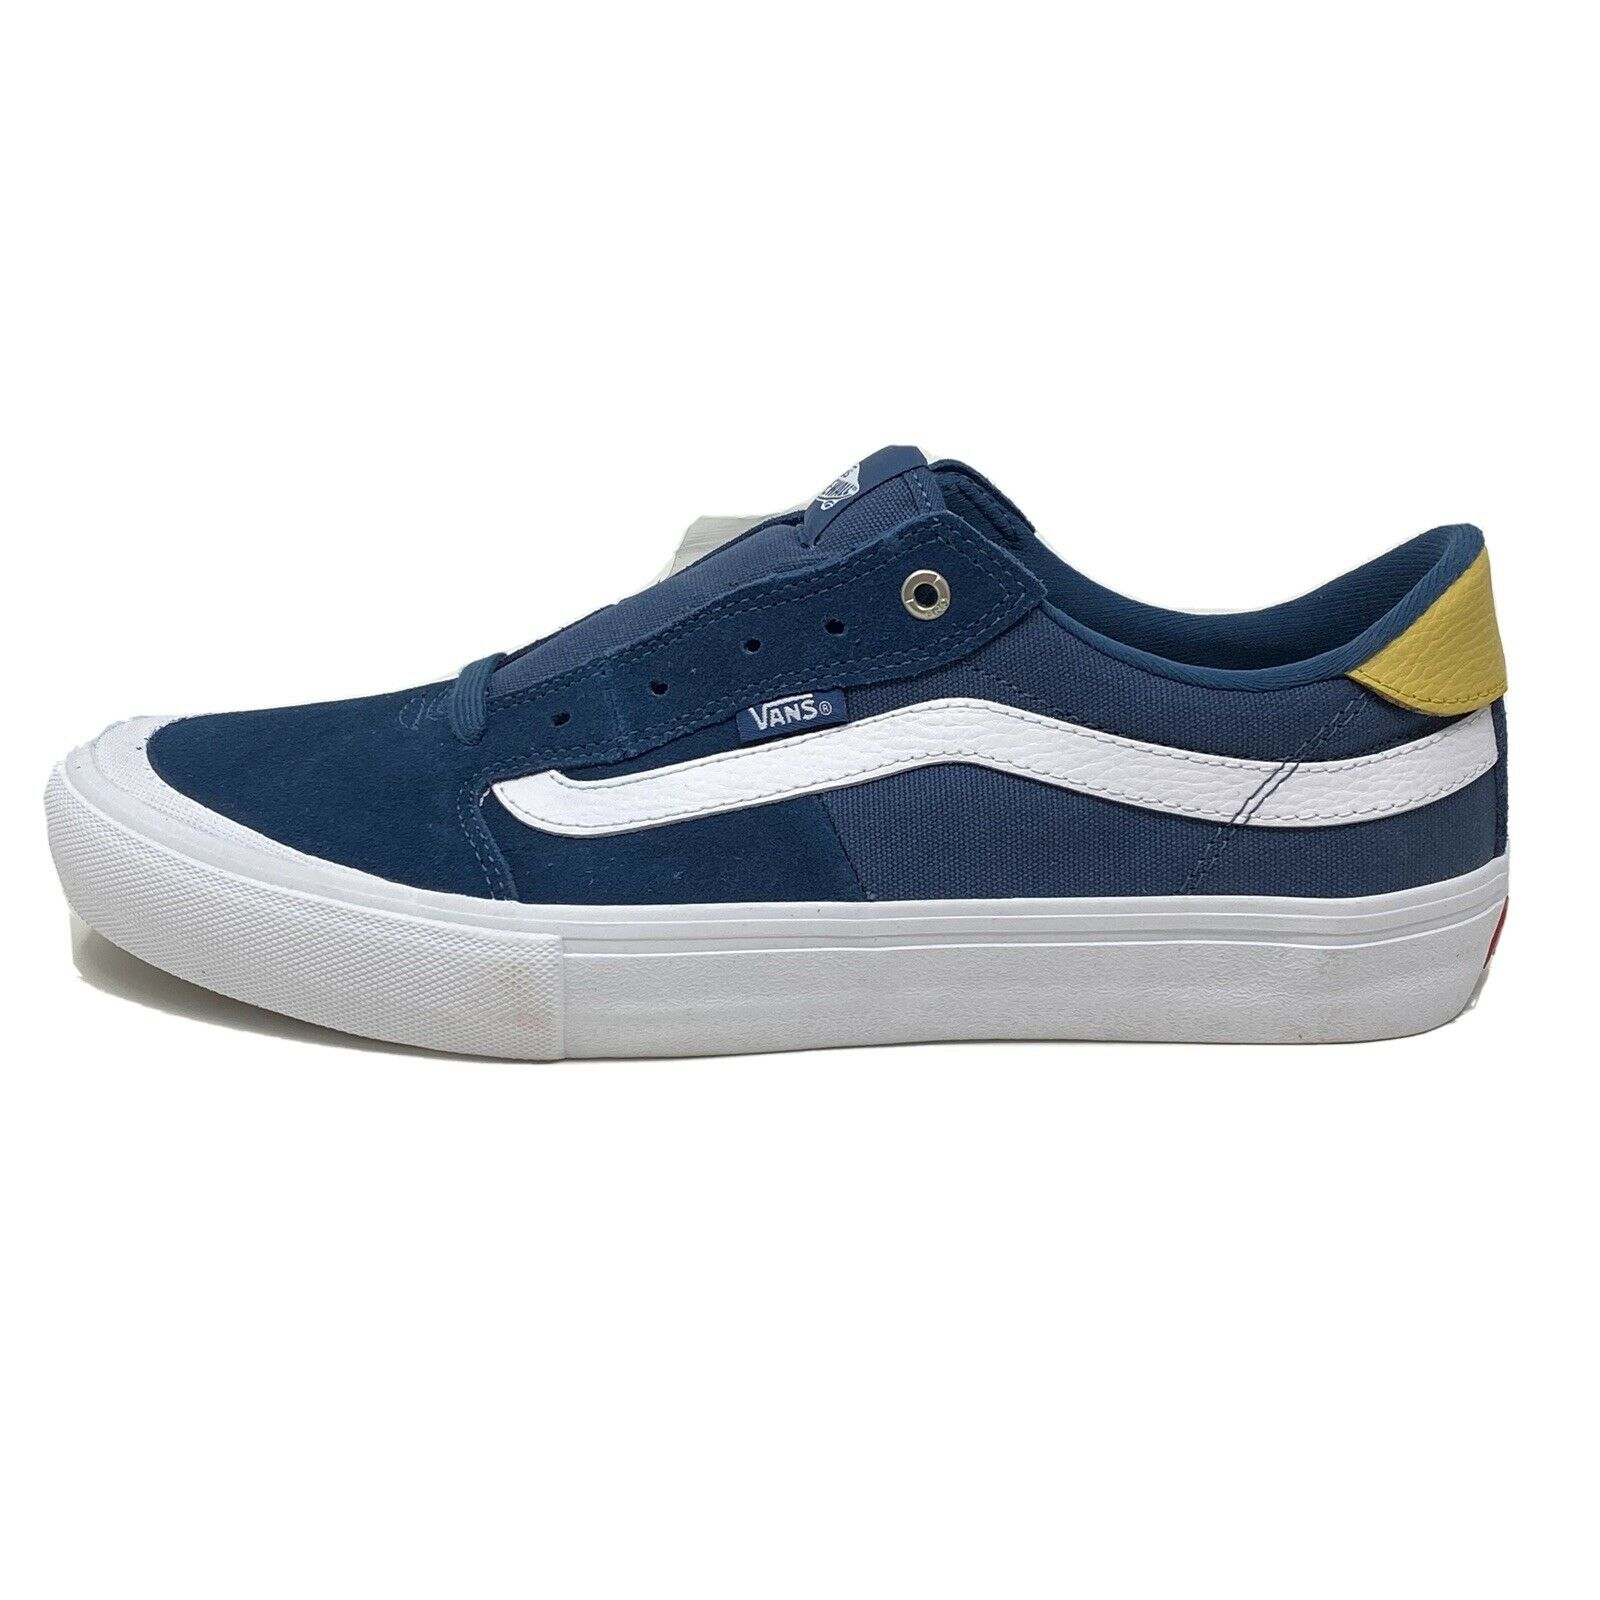 VANS Style 112 Pro Drizzle Micro Chip